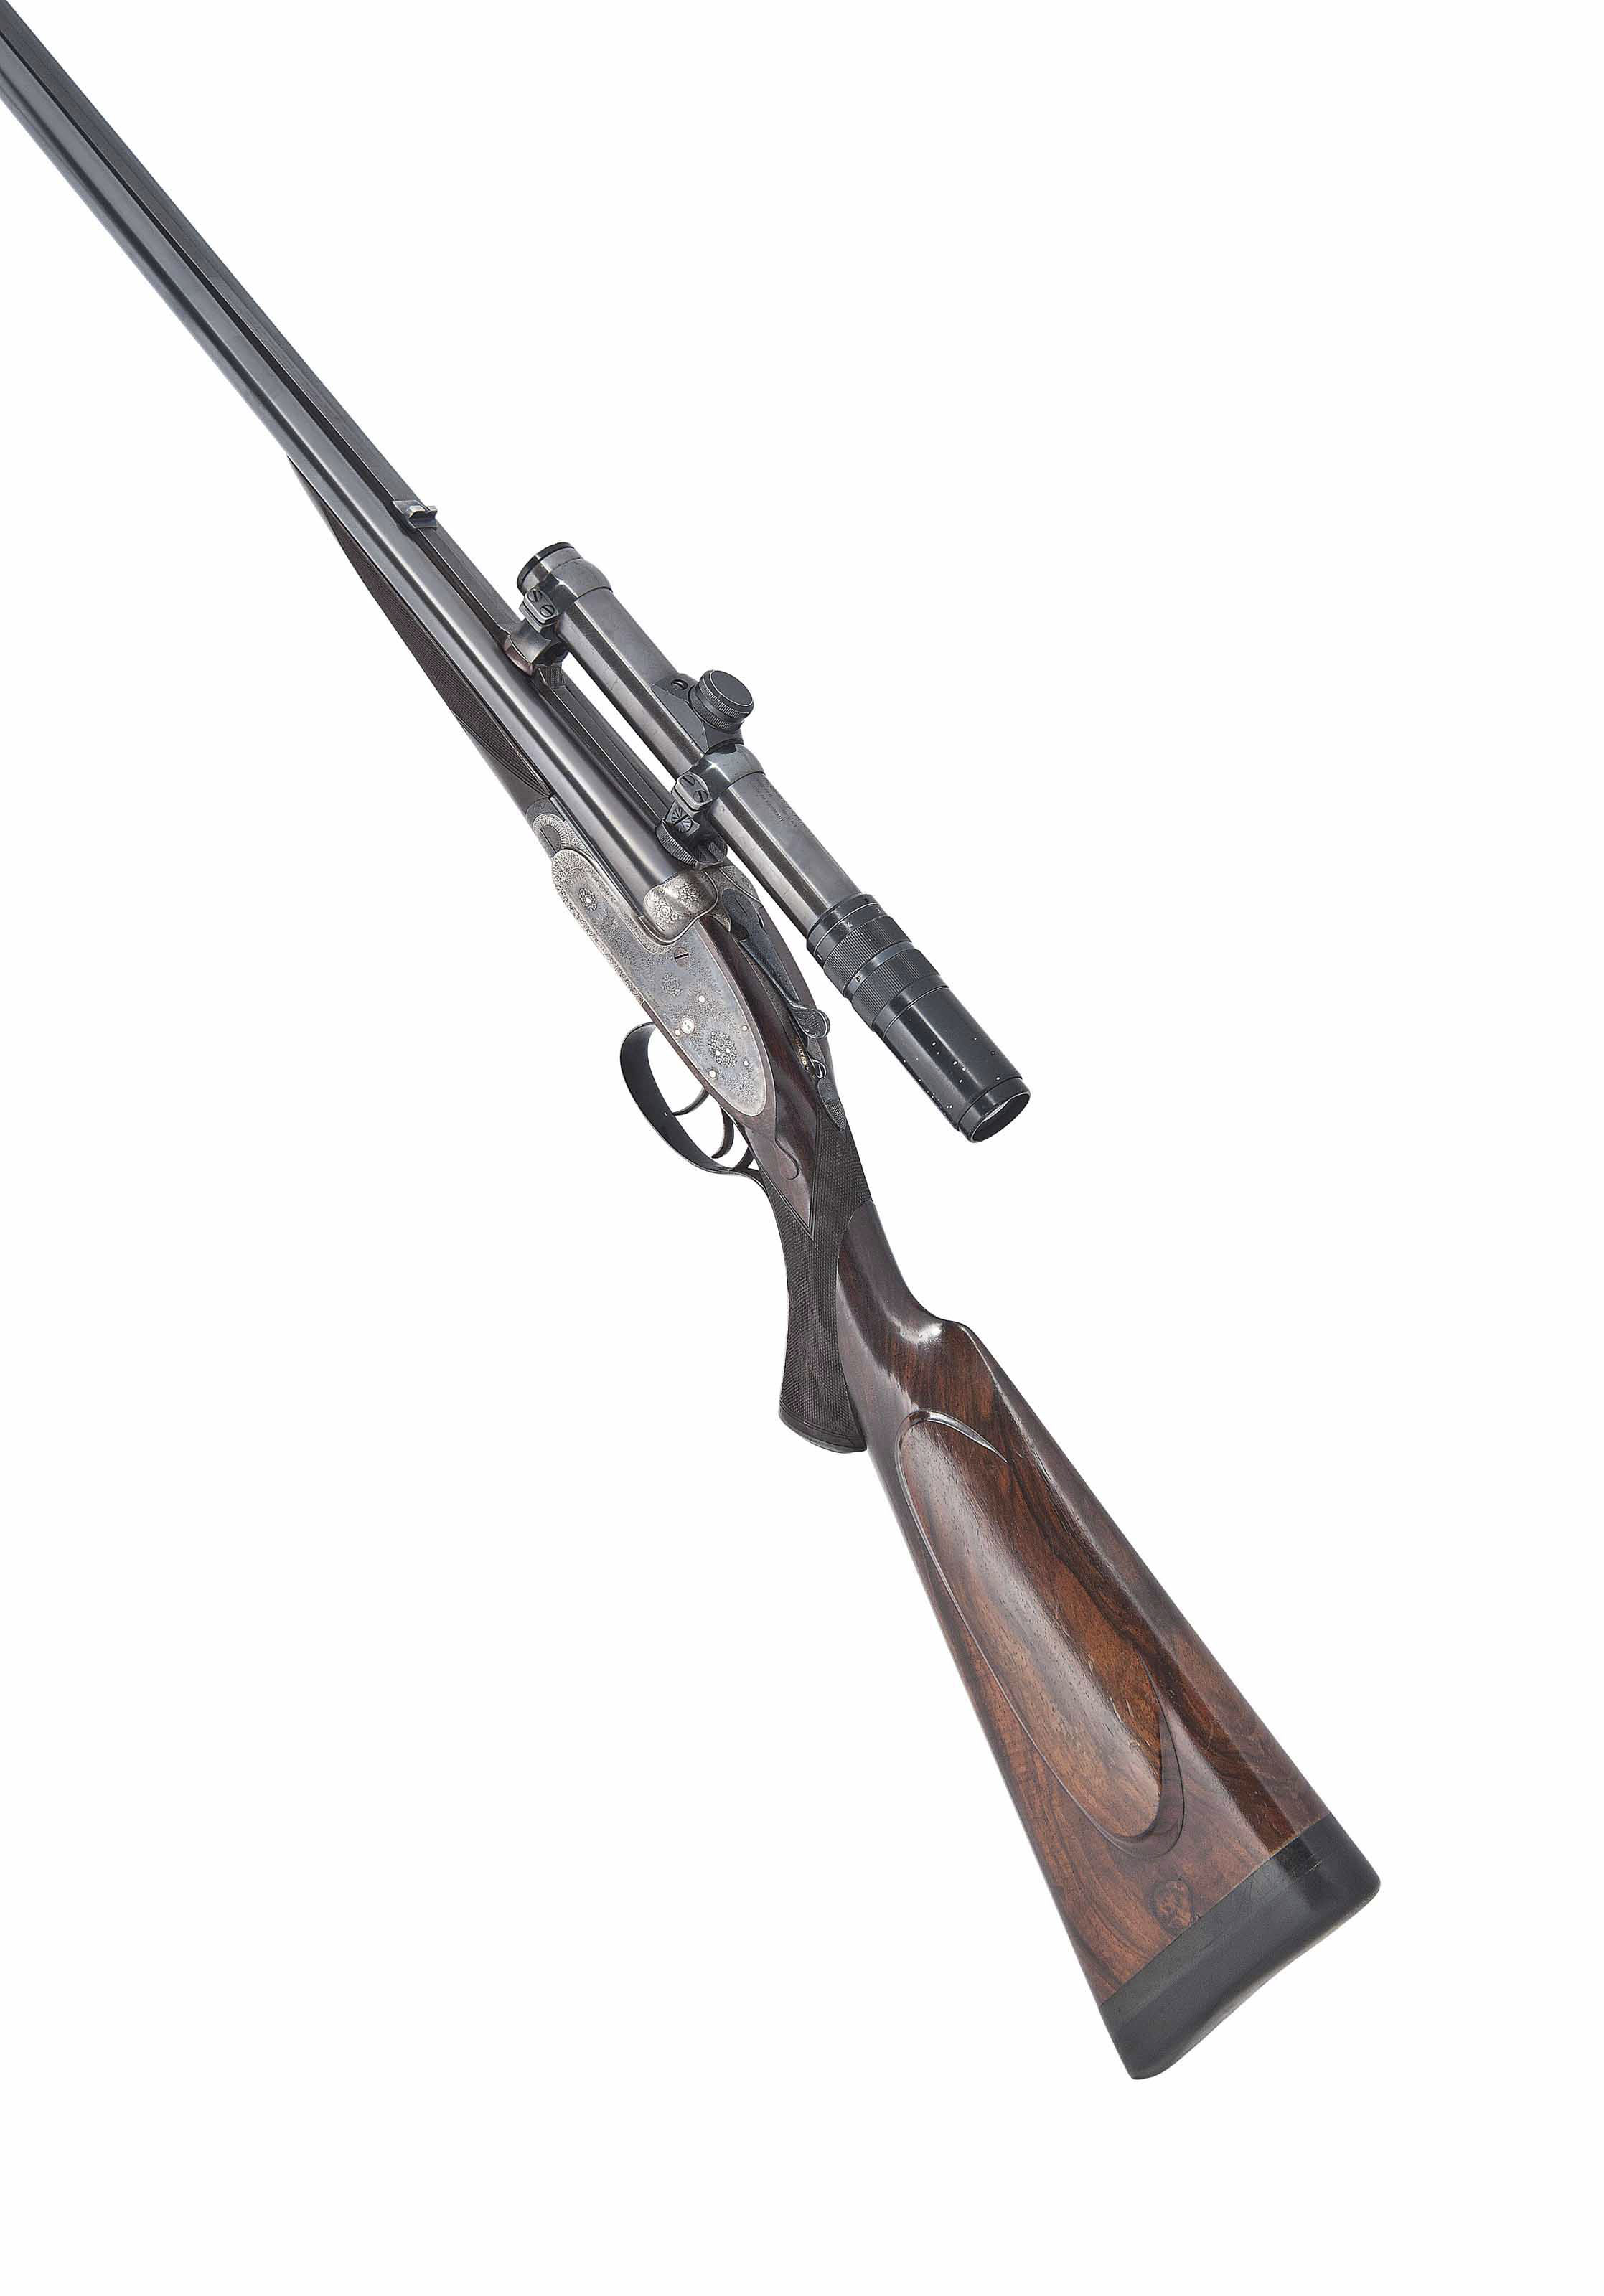 A 9.3X74mmR SELF-OPENING SIDELOCK EJECTOR DOUBLE RIFLE